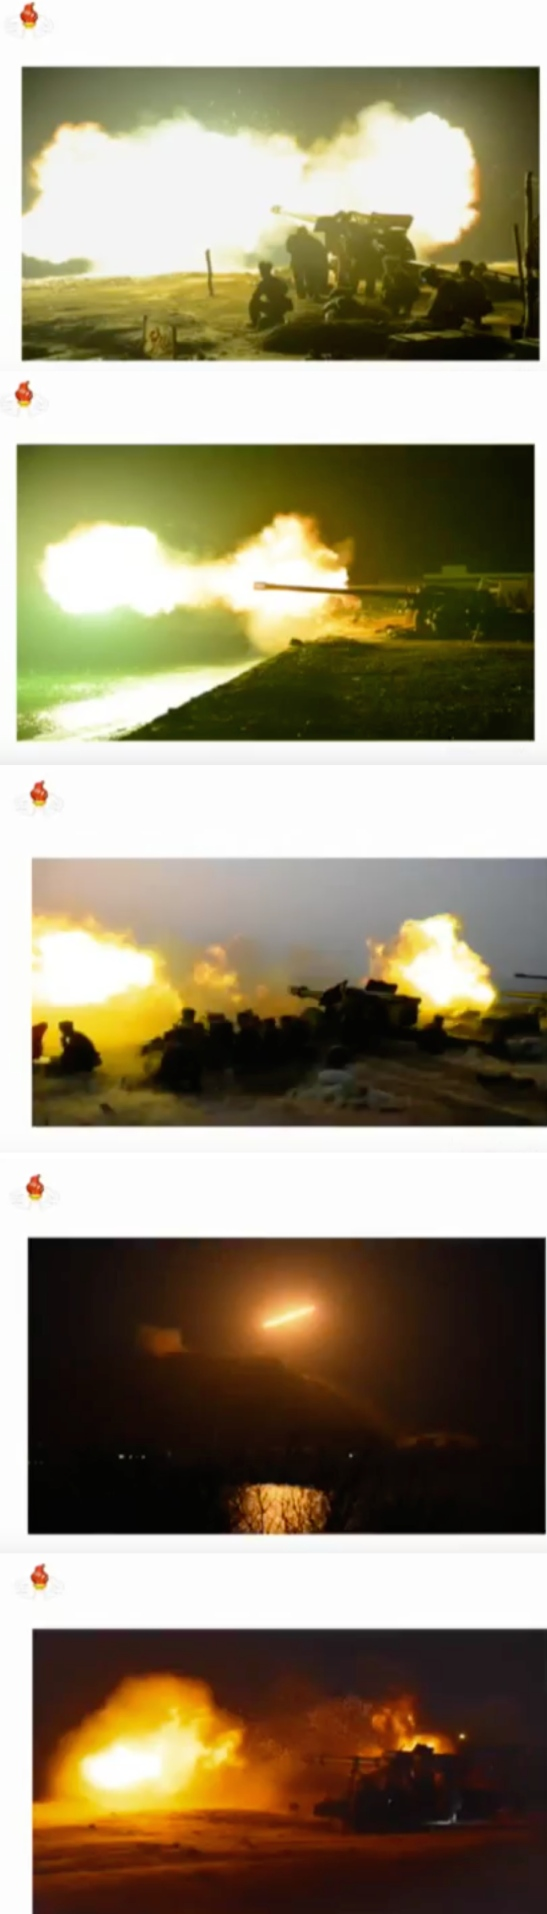 Still images of an April 9 live-fire artillery exercise aired on Korean Central Television on April 12, 2016 (Photos: KCTV).